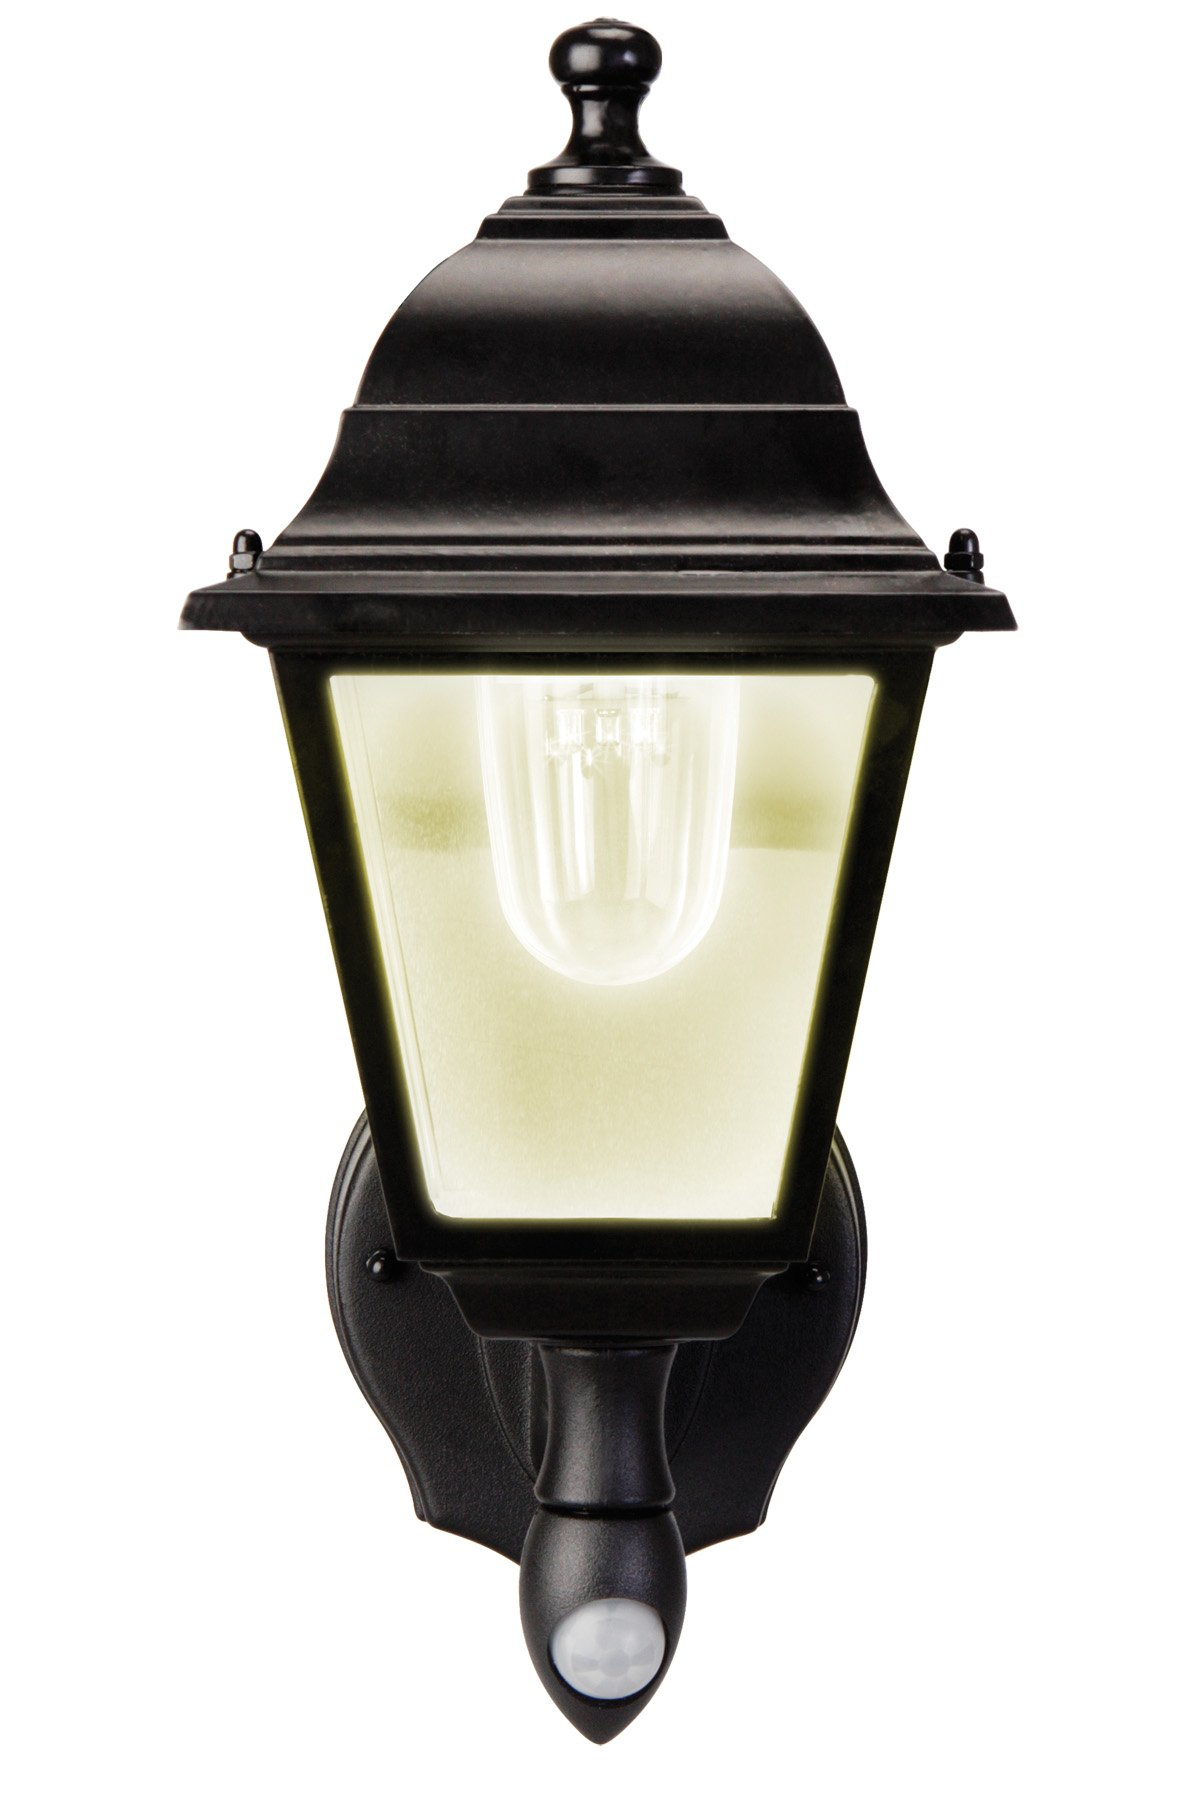 Maxsa Innovations MAXSA Outdoor, Battery Powered, LED Wall Sconce. Motion Activated with Warm White Light, Wireless, Metal & Glass Outdoor Porch, Entrance Light, Black 43319